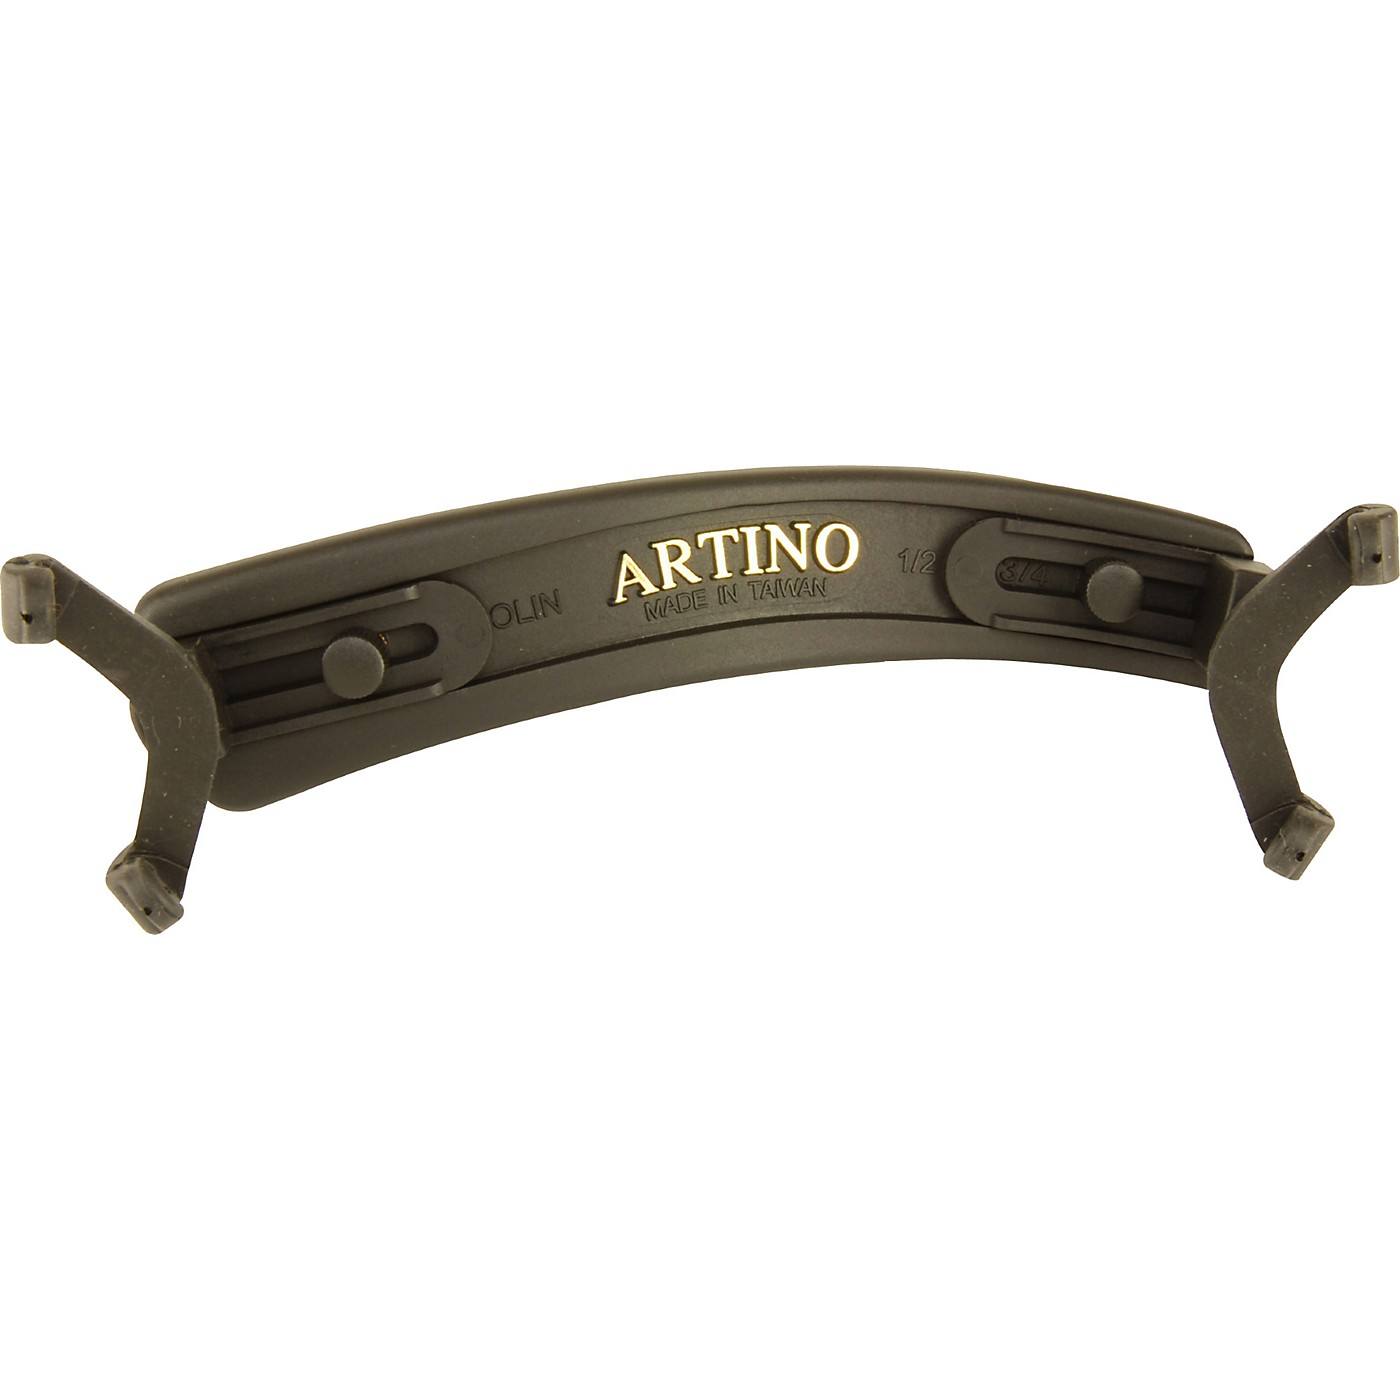 Artino Comfort Model Shoulder Rest thumbnail